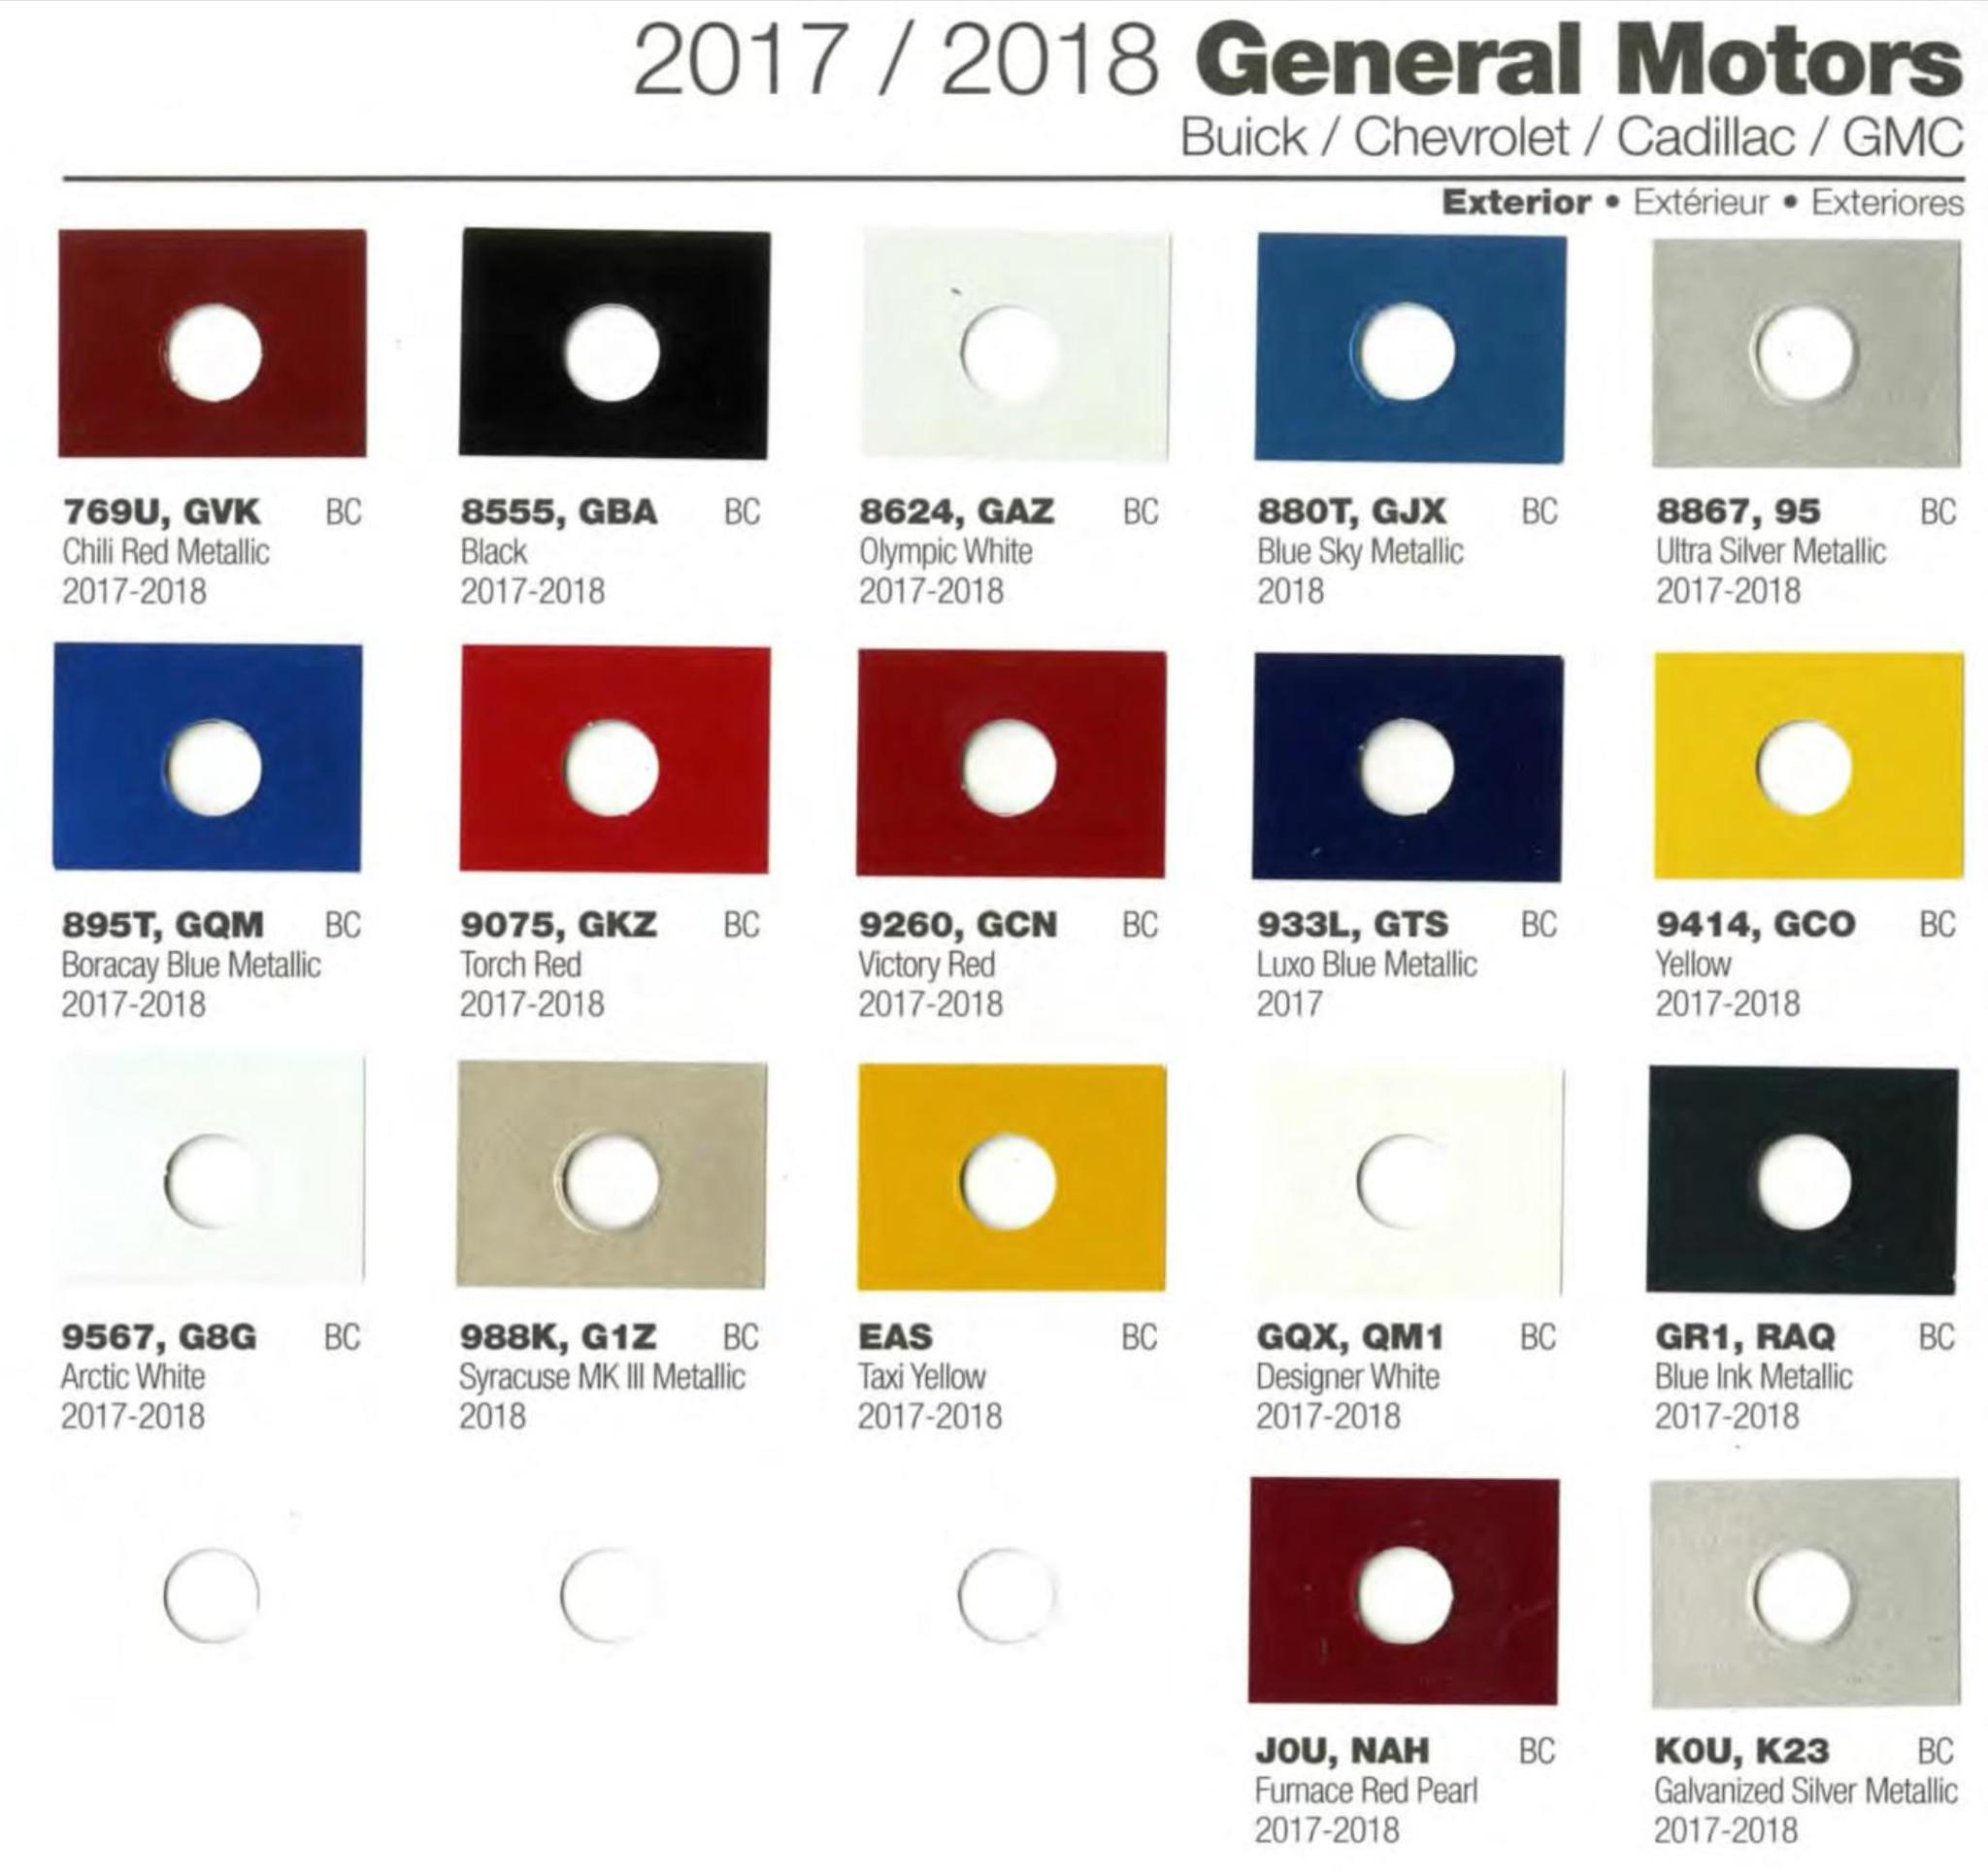 Codes for Buick, Chevrolet, Cadillac, and Gmc Motor vehicles